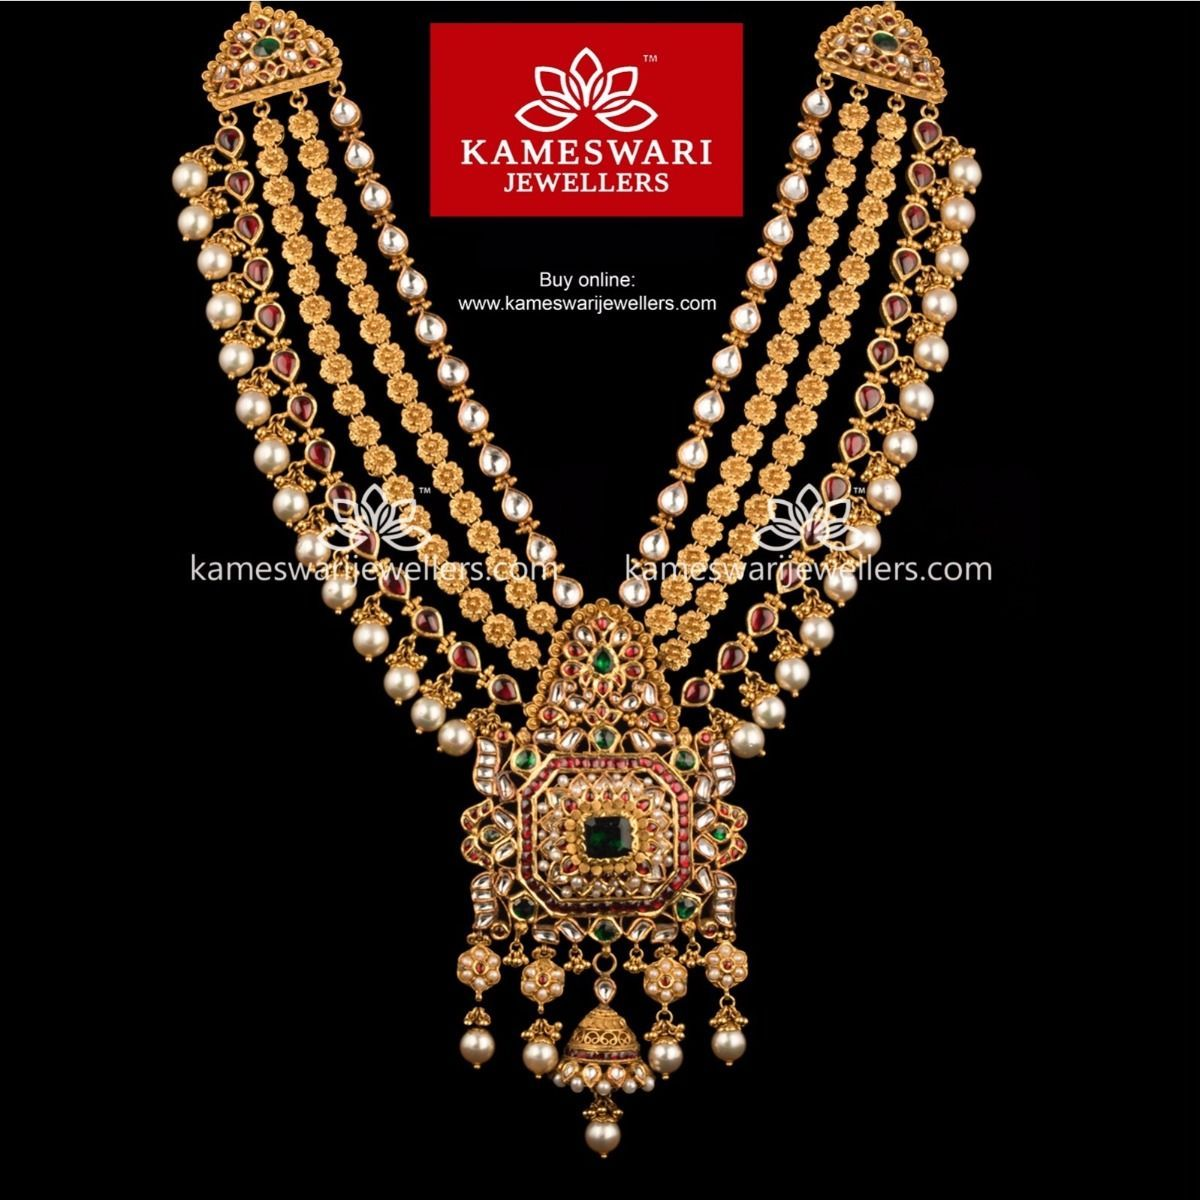 Kemp hangings necklace online india and traditional